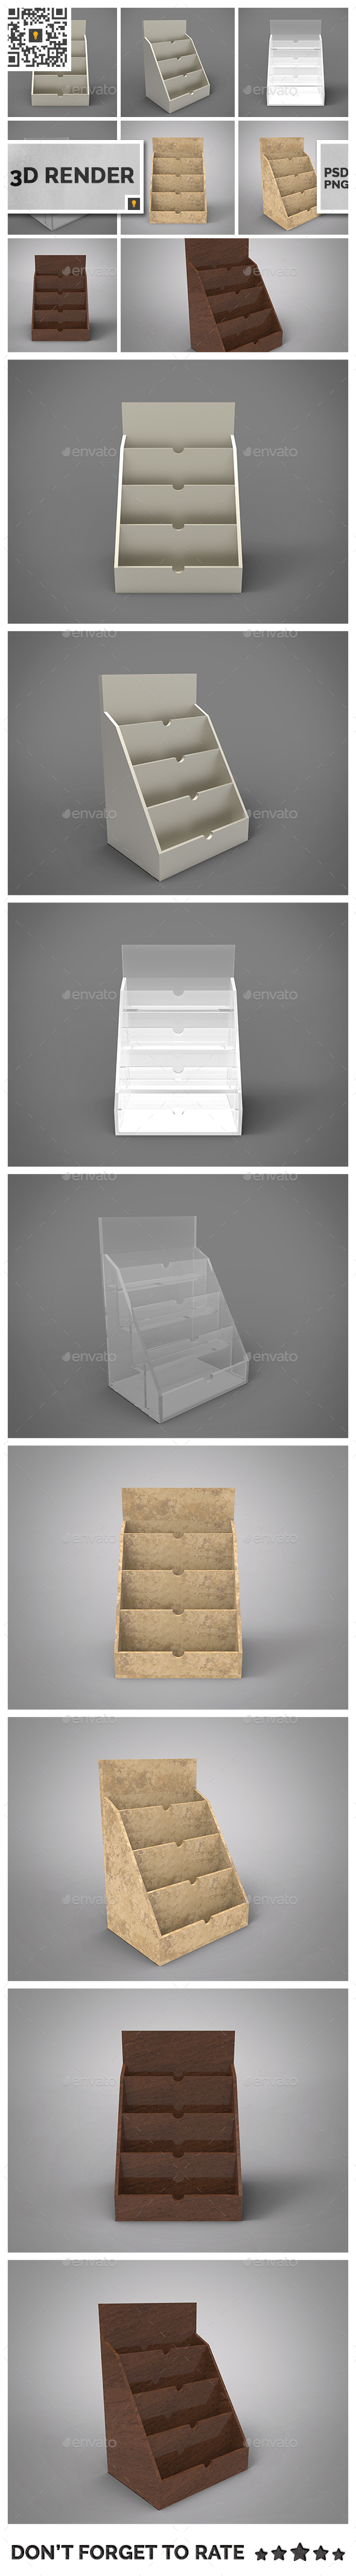 Business Card Holder 3D Render - Objects 3D Renders